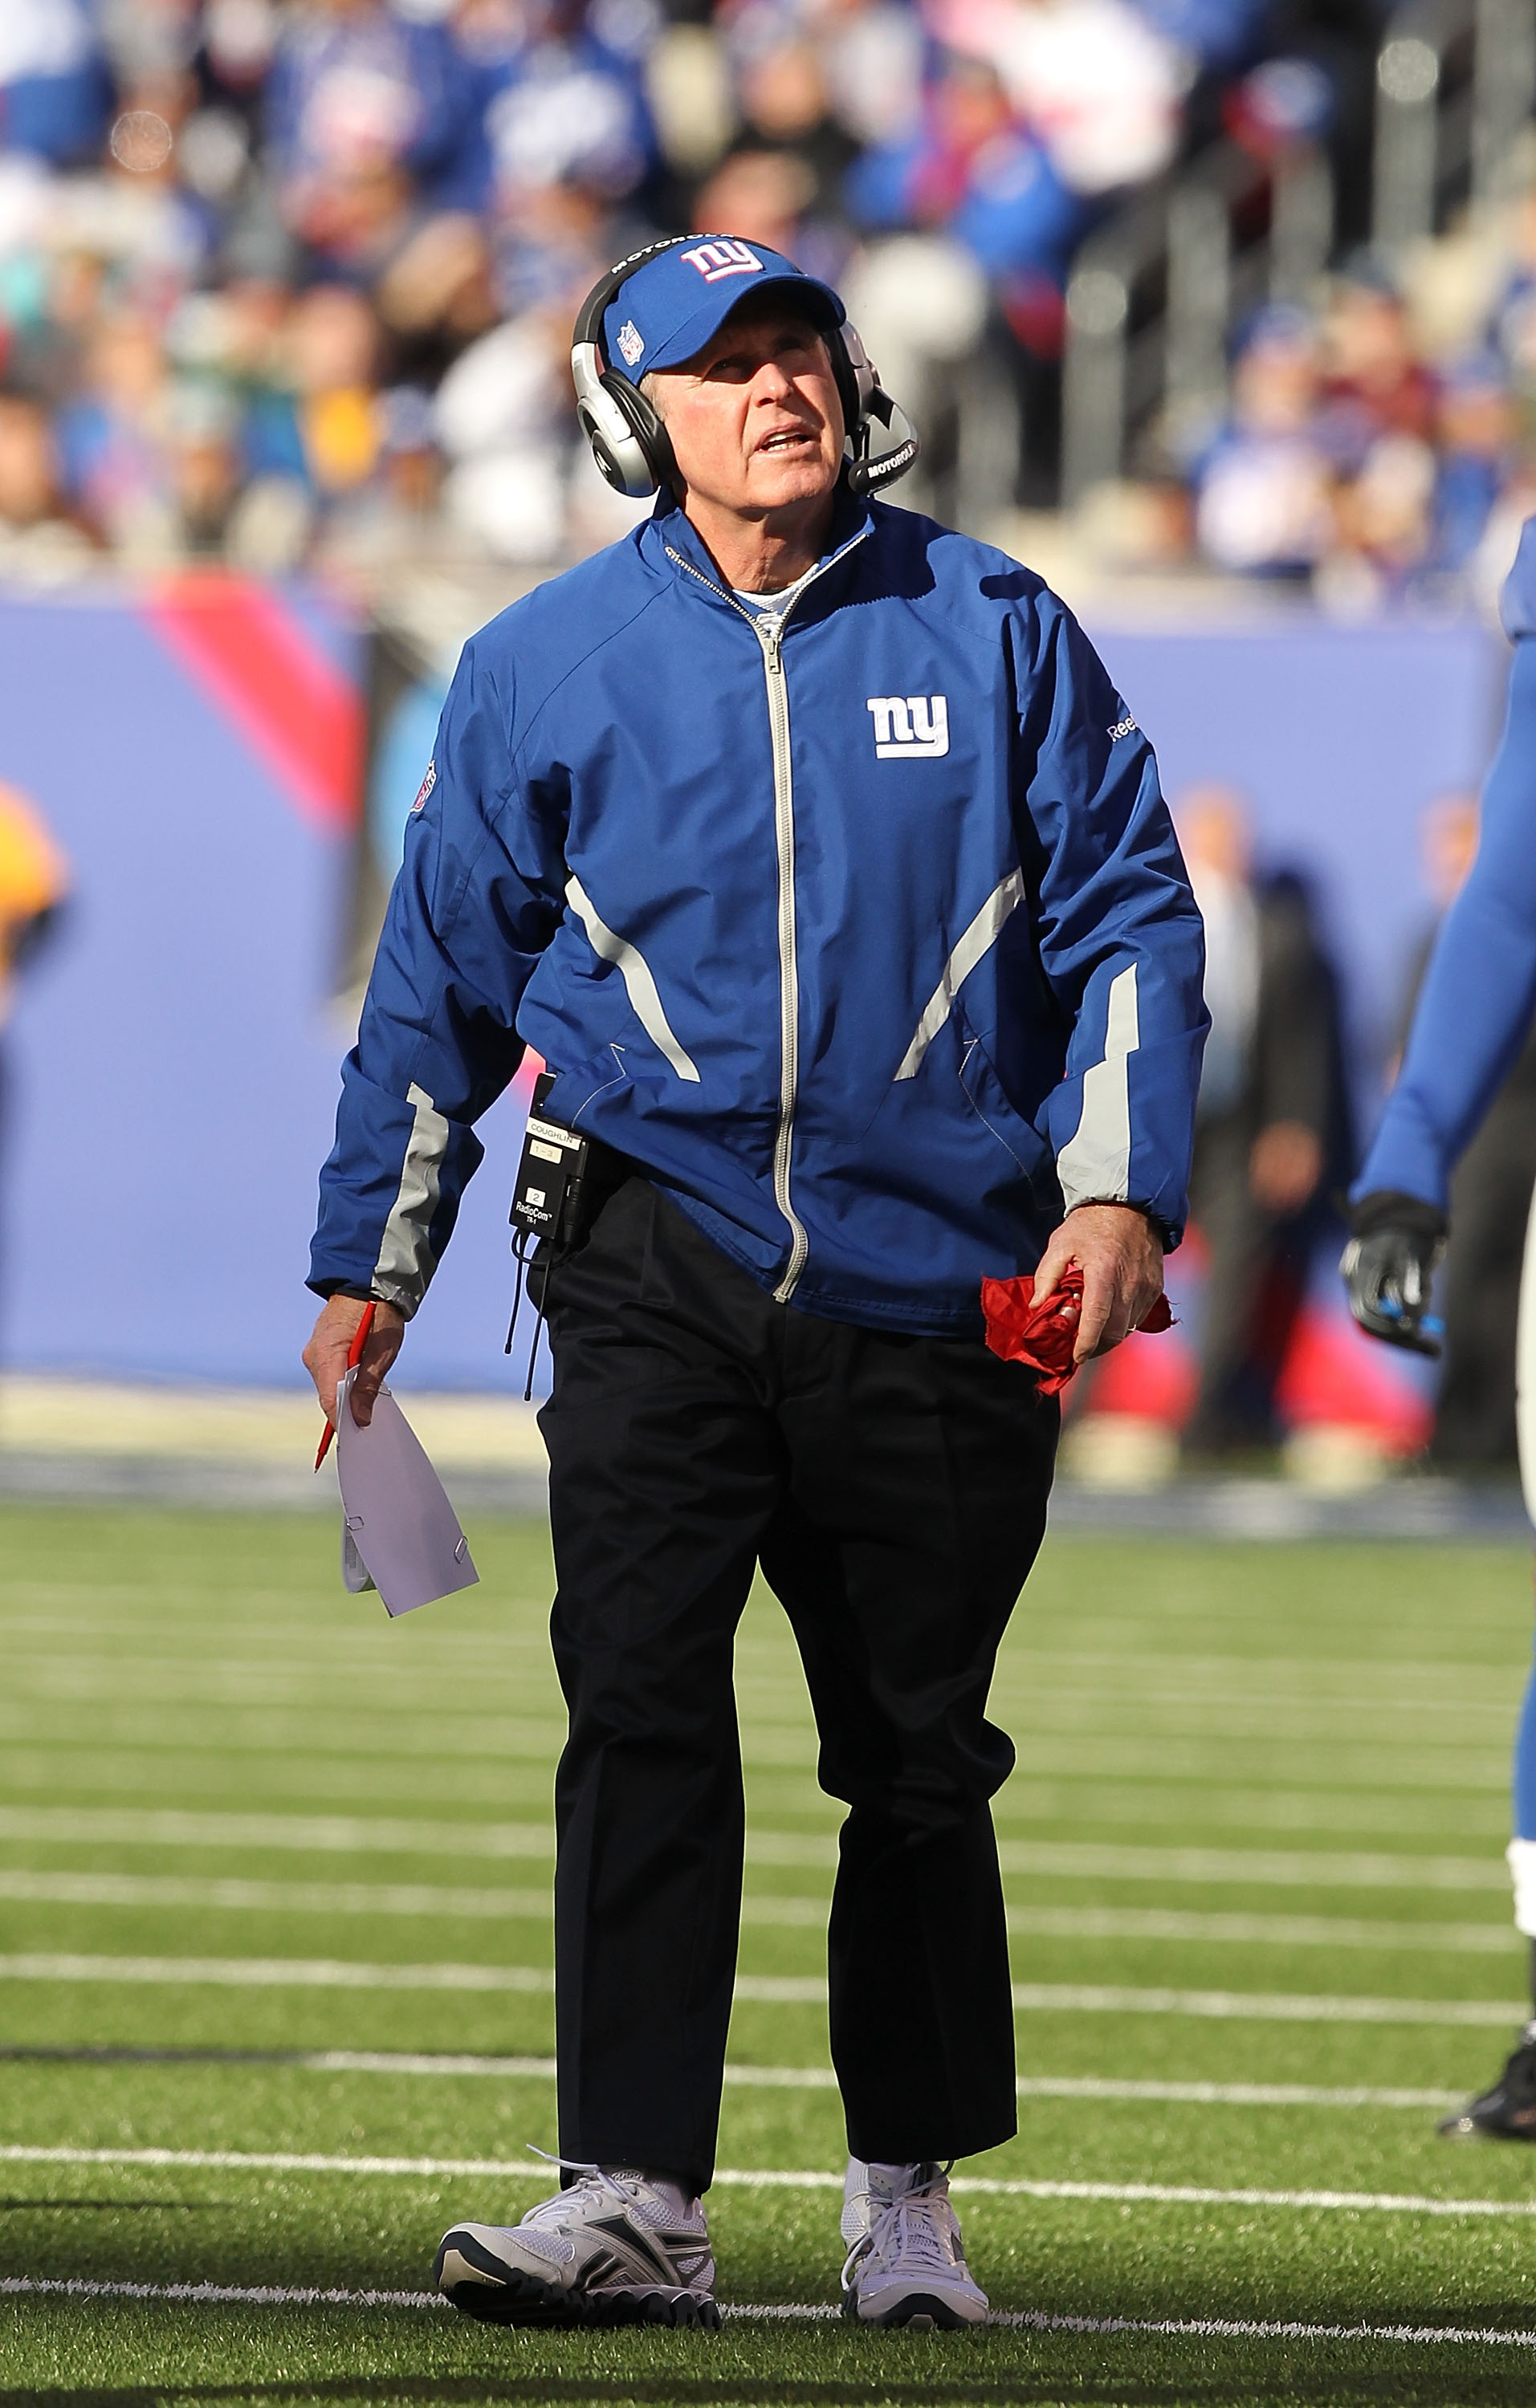 EAST RUTHERFORD, NJ - NOVEMBER 28:  New York Giants Head Coach Tom Coughlin looks on against the Jacksonville Jaguars on November 28, 2010 at The New Meadowlands Stadium in East Rutherford, New Jersey.  (Photo by Al Bello/Getty Images)